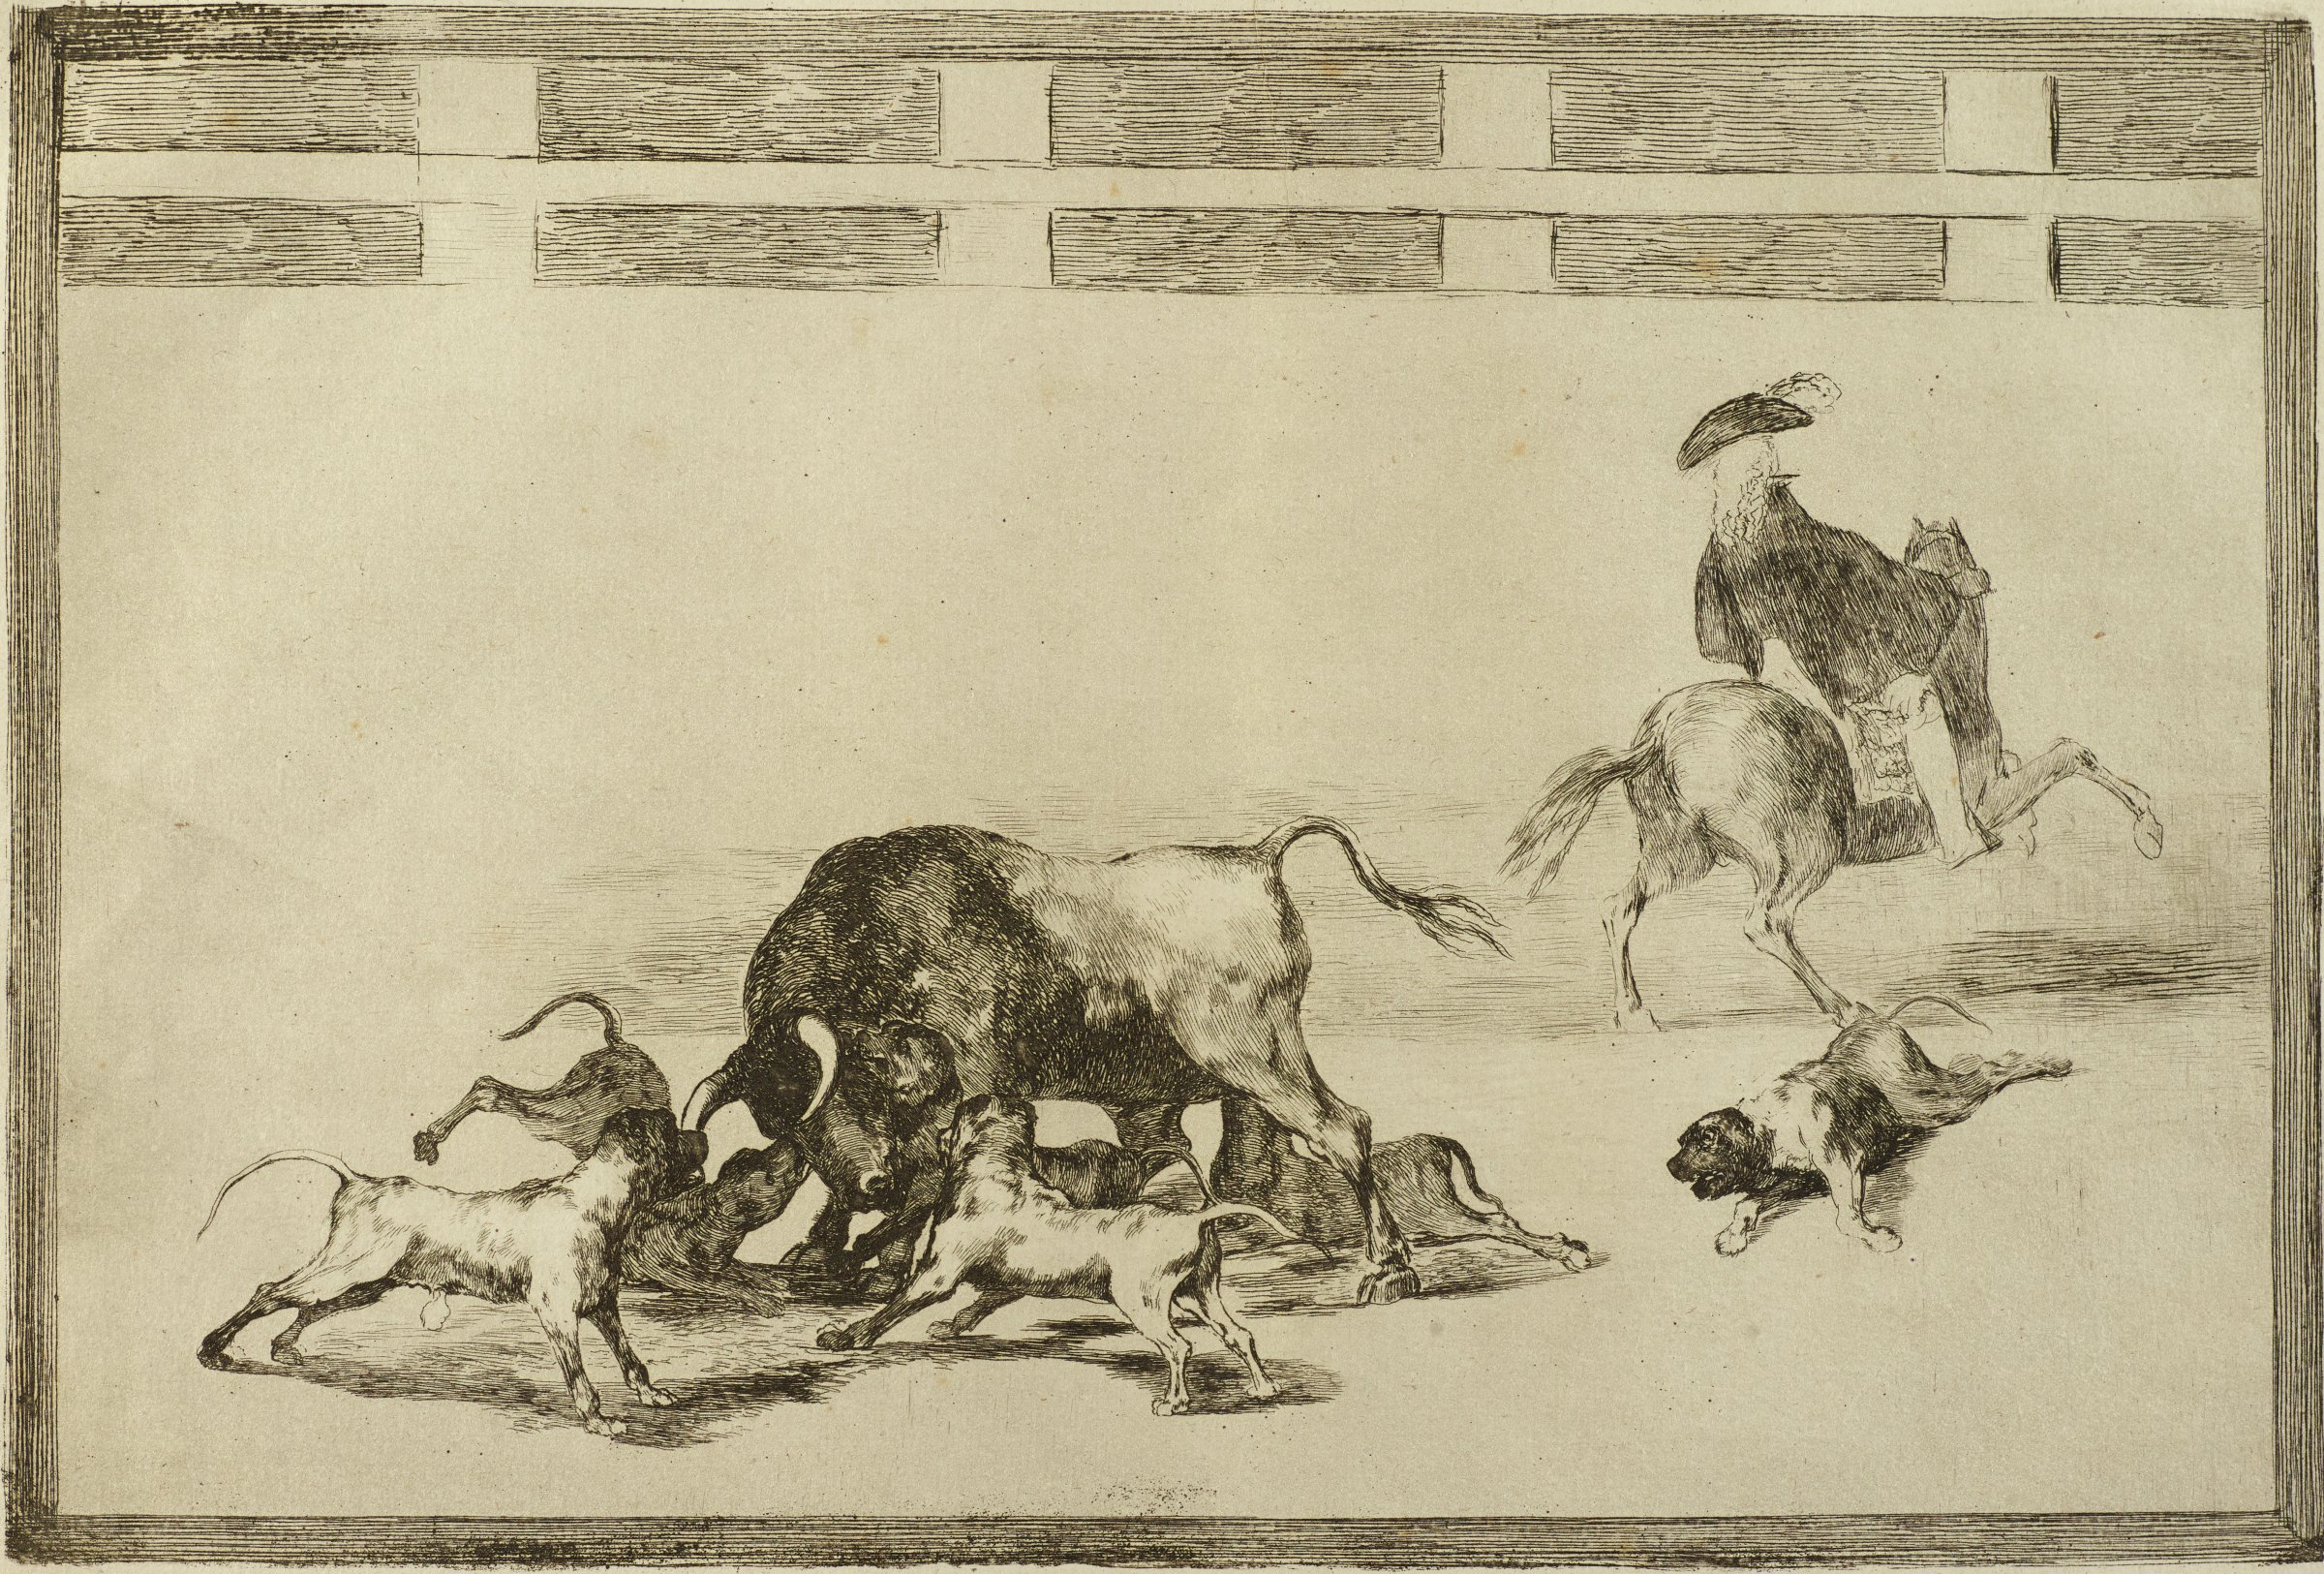 A bull standing off-center is being surrounded and attacked by six dogs while a man on the right in a feathered hat rides away from the viewer on horseback.